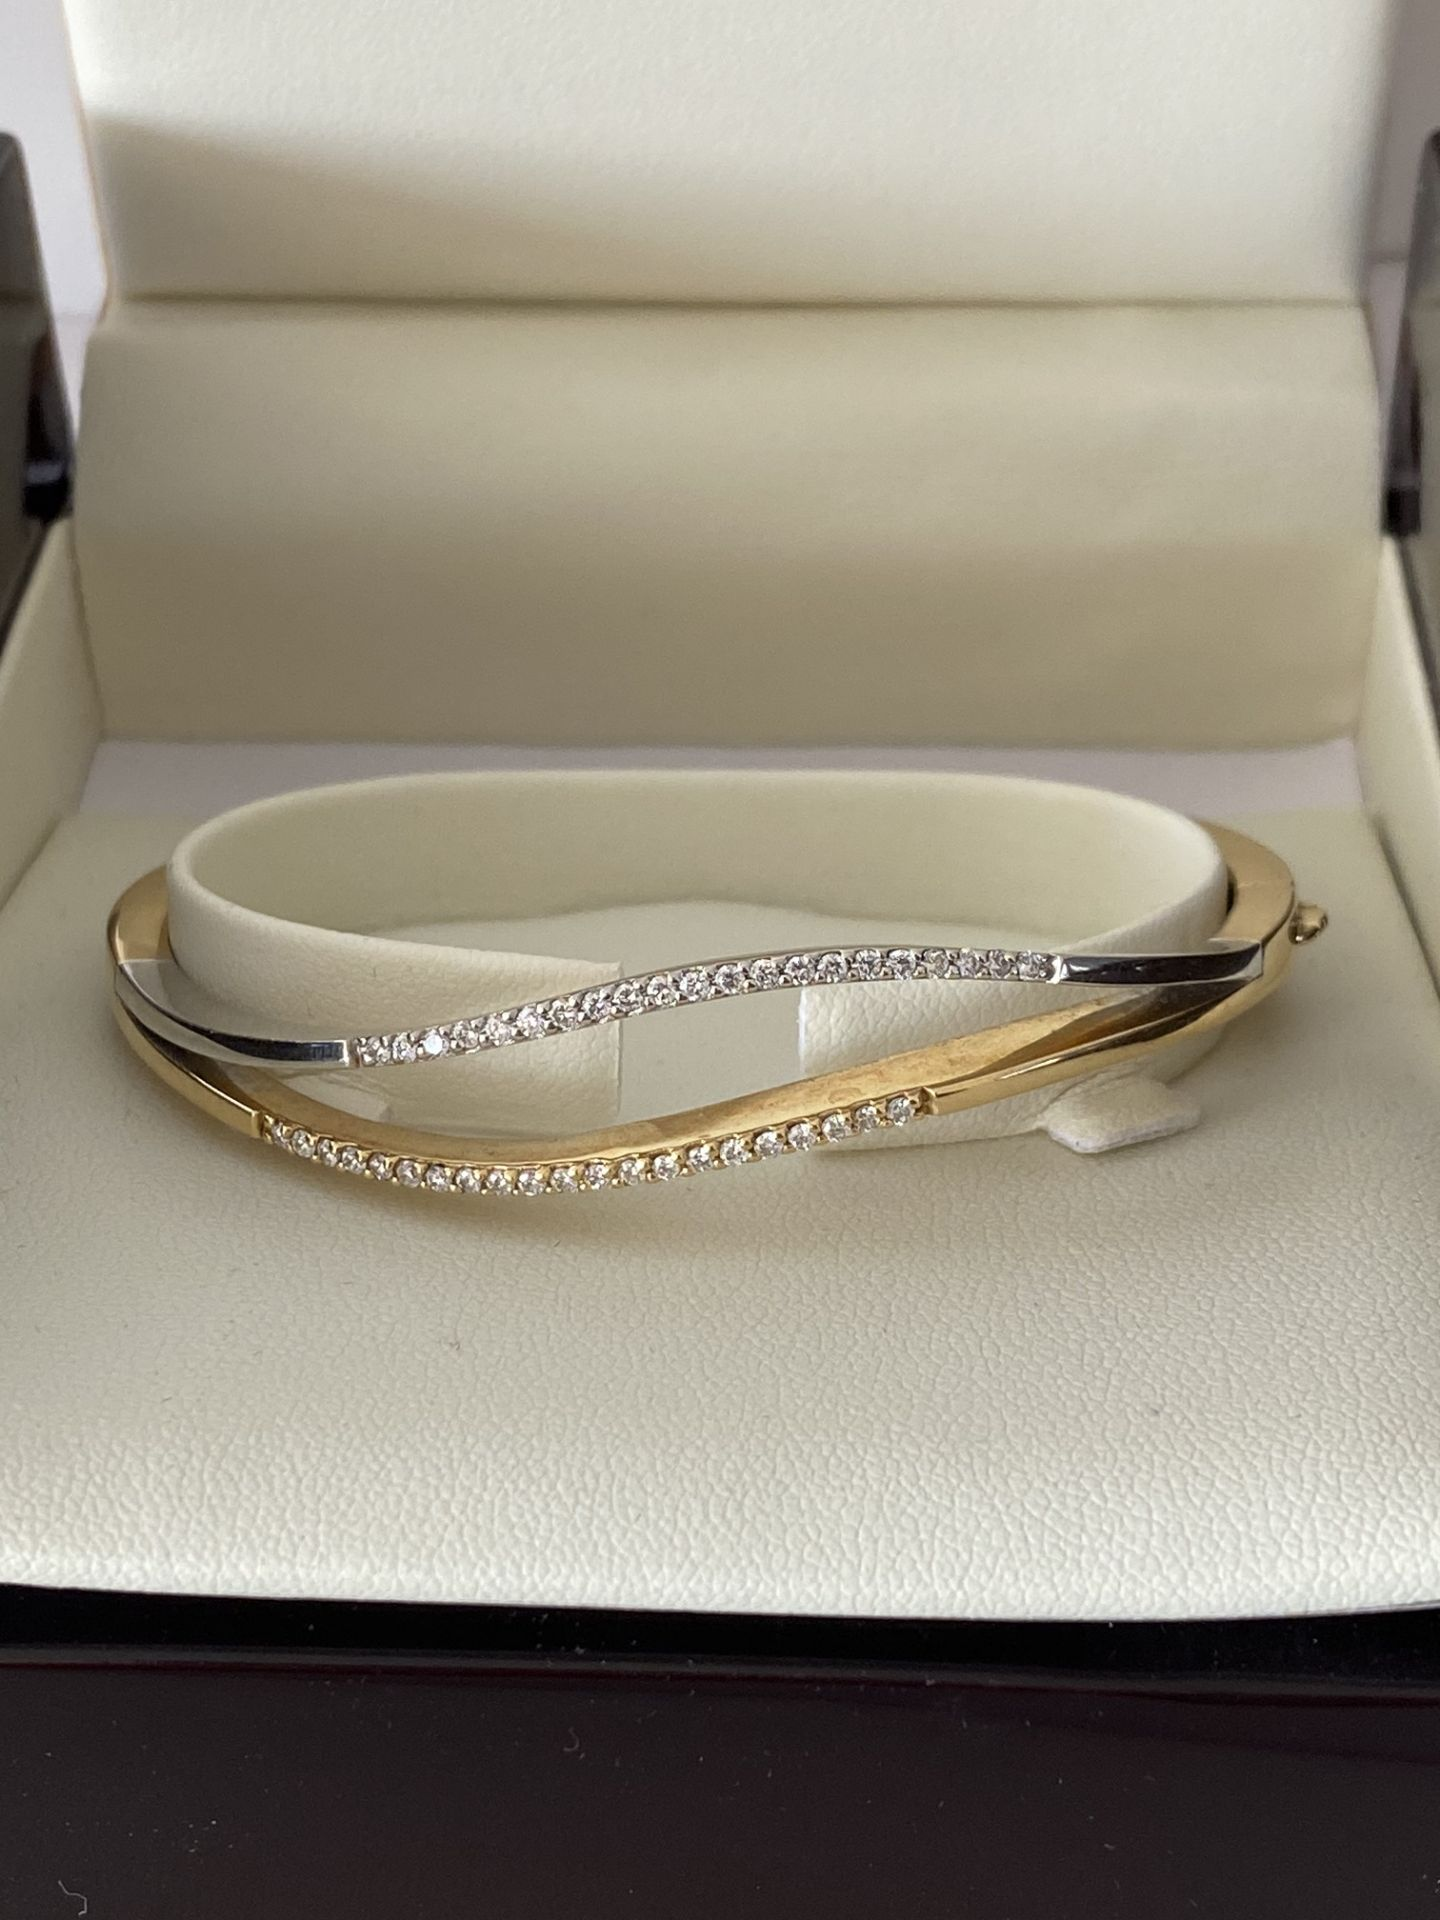 18ct GOLD DIAMOND SET HINGED BANGLE - Image 3 of 6